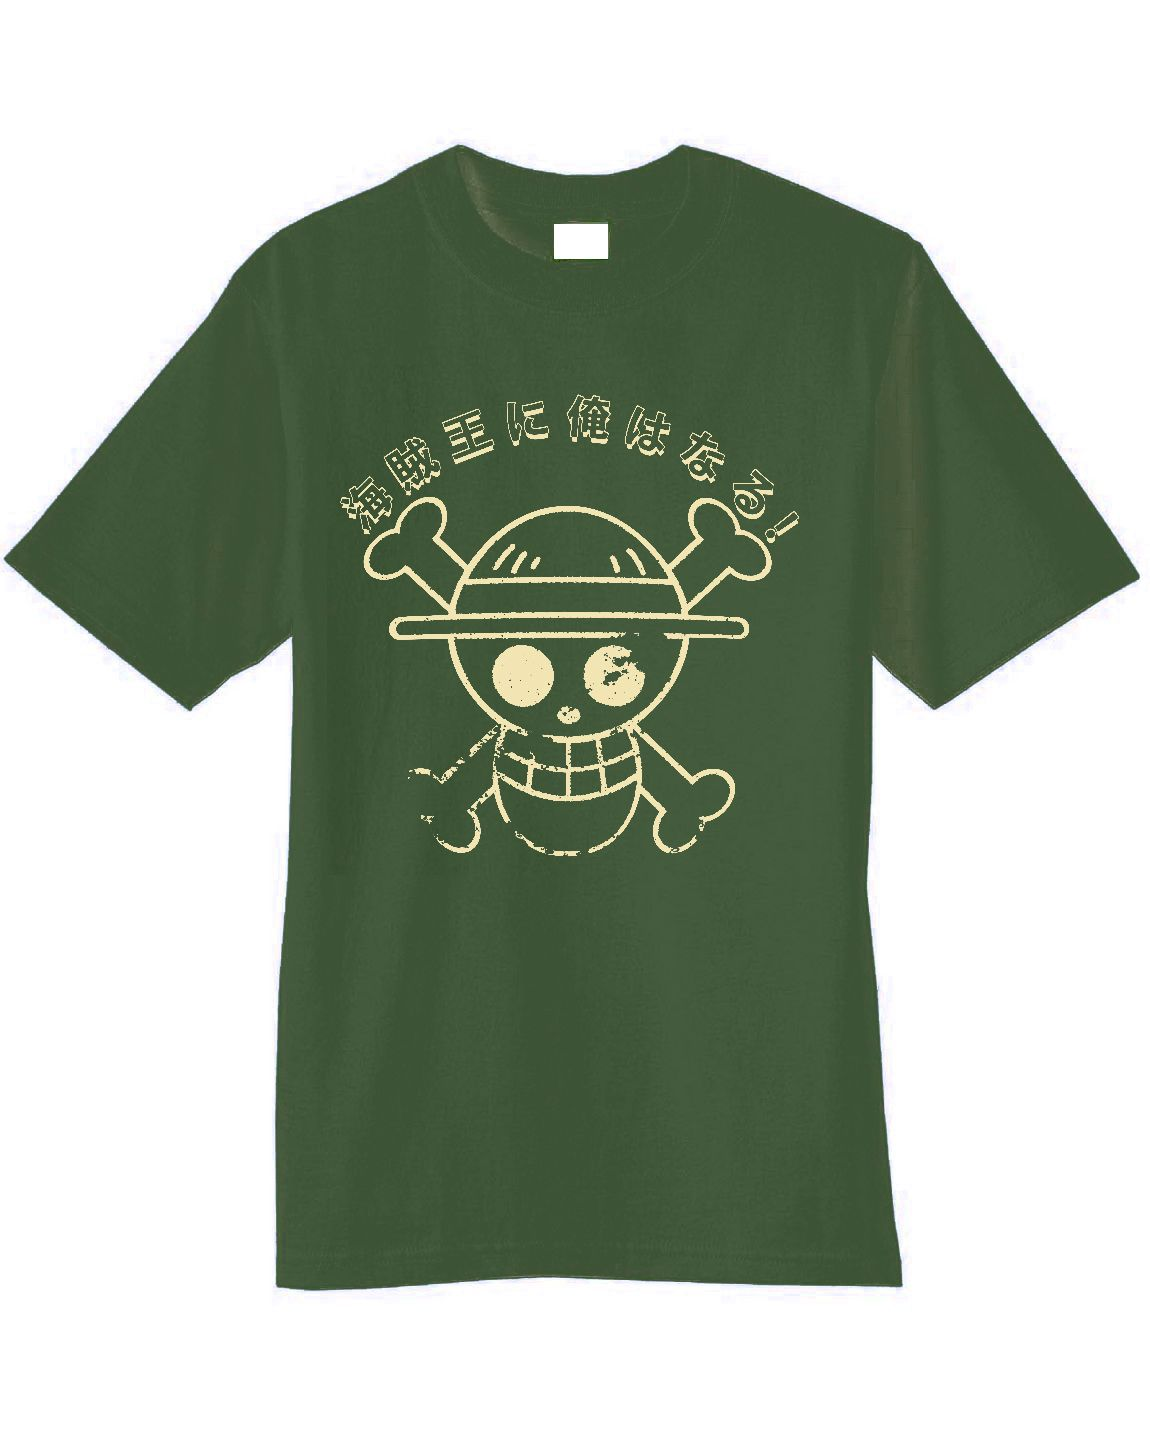 ce751d74a This One Piece pirate shirt is a limited edition run. Get one before  they're gone! Japancast is working hard to be your source for everything One  Piece.